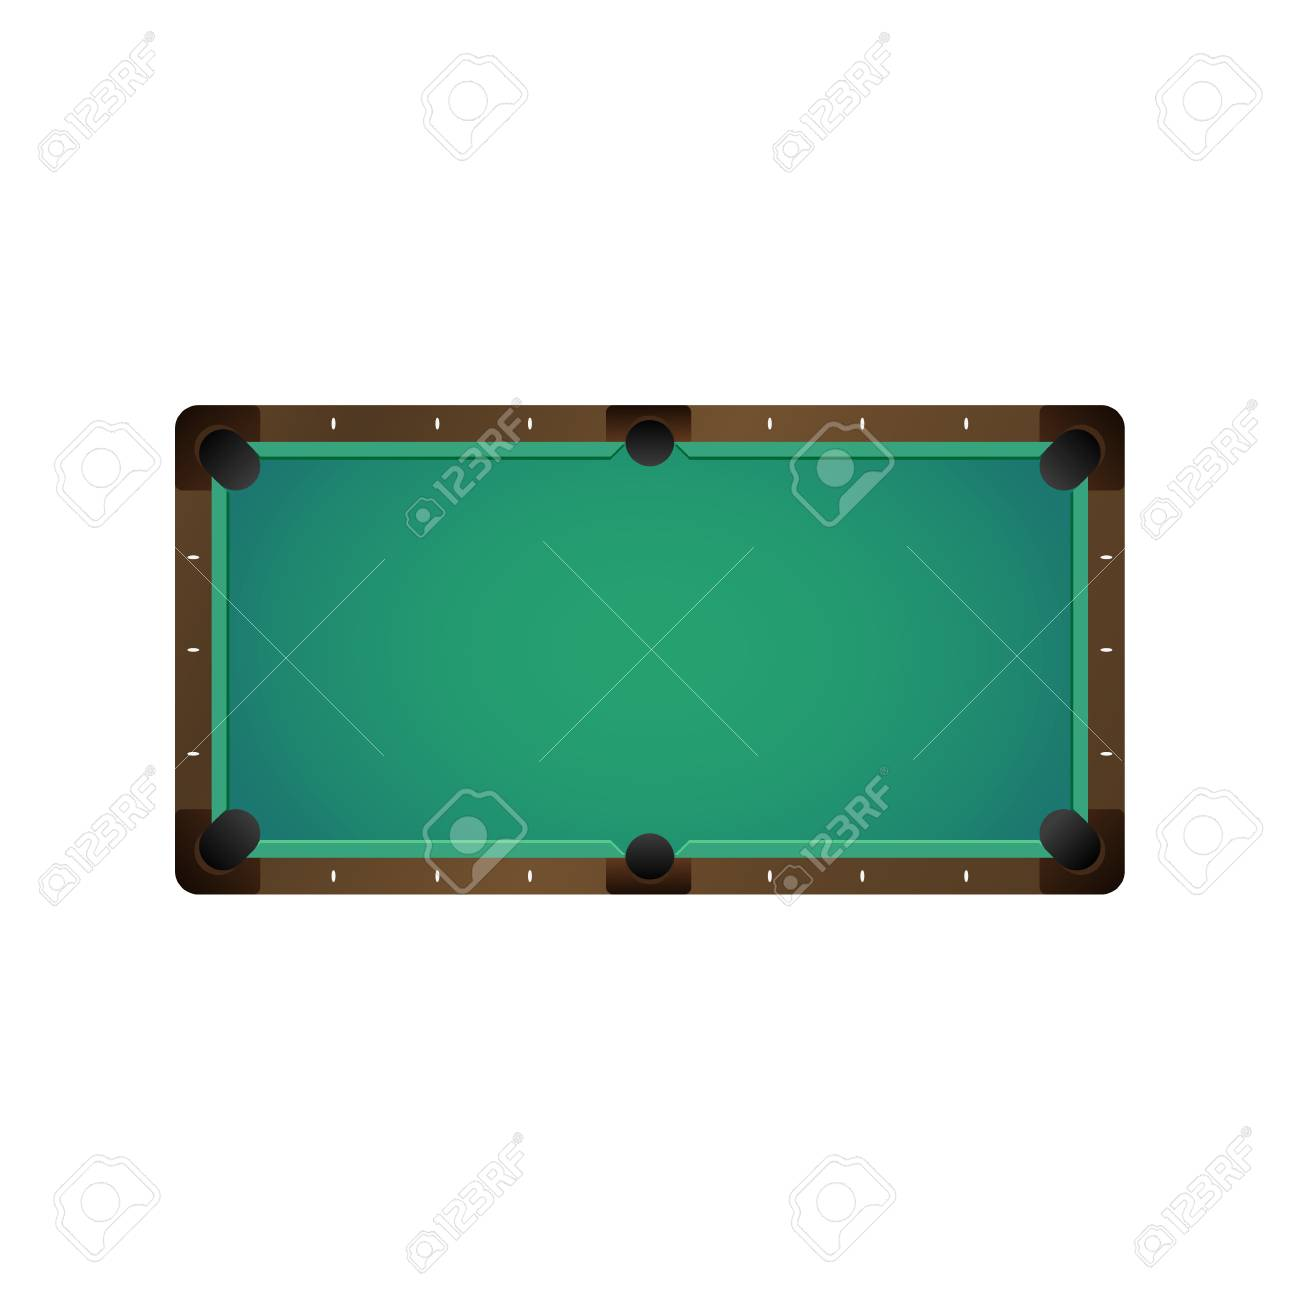 Vector   Vector Flat Cartoon Billiard Pool, Snooker Felt Empty Green Table  Top View. Isolated Illustration On A White Background. Playground For Cue  Sport ...